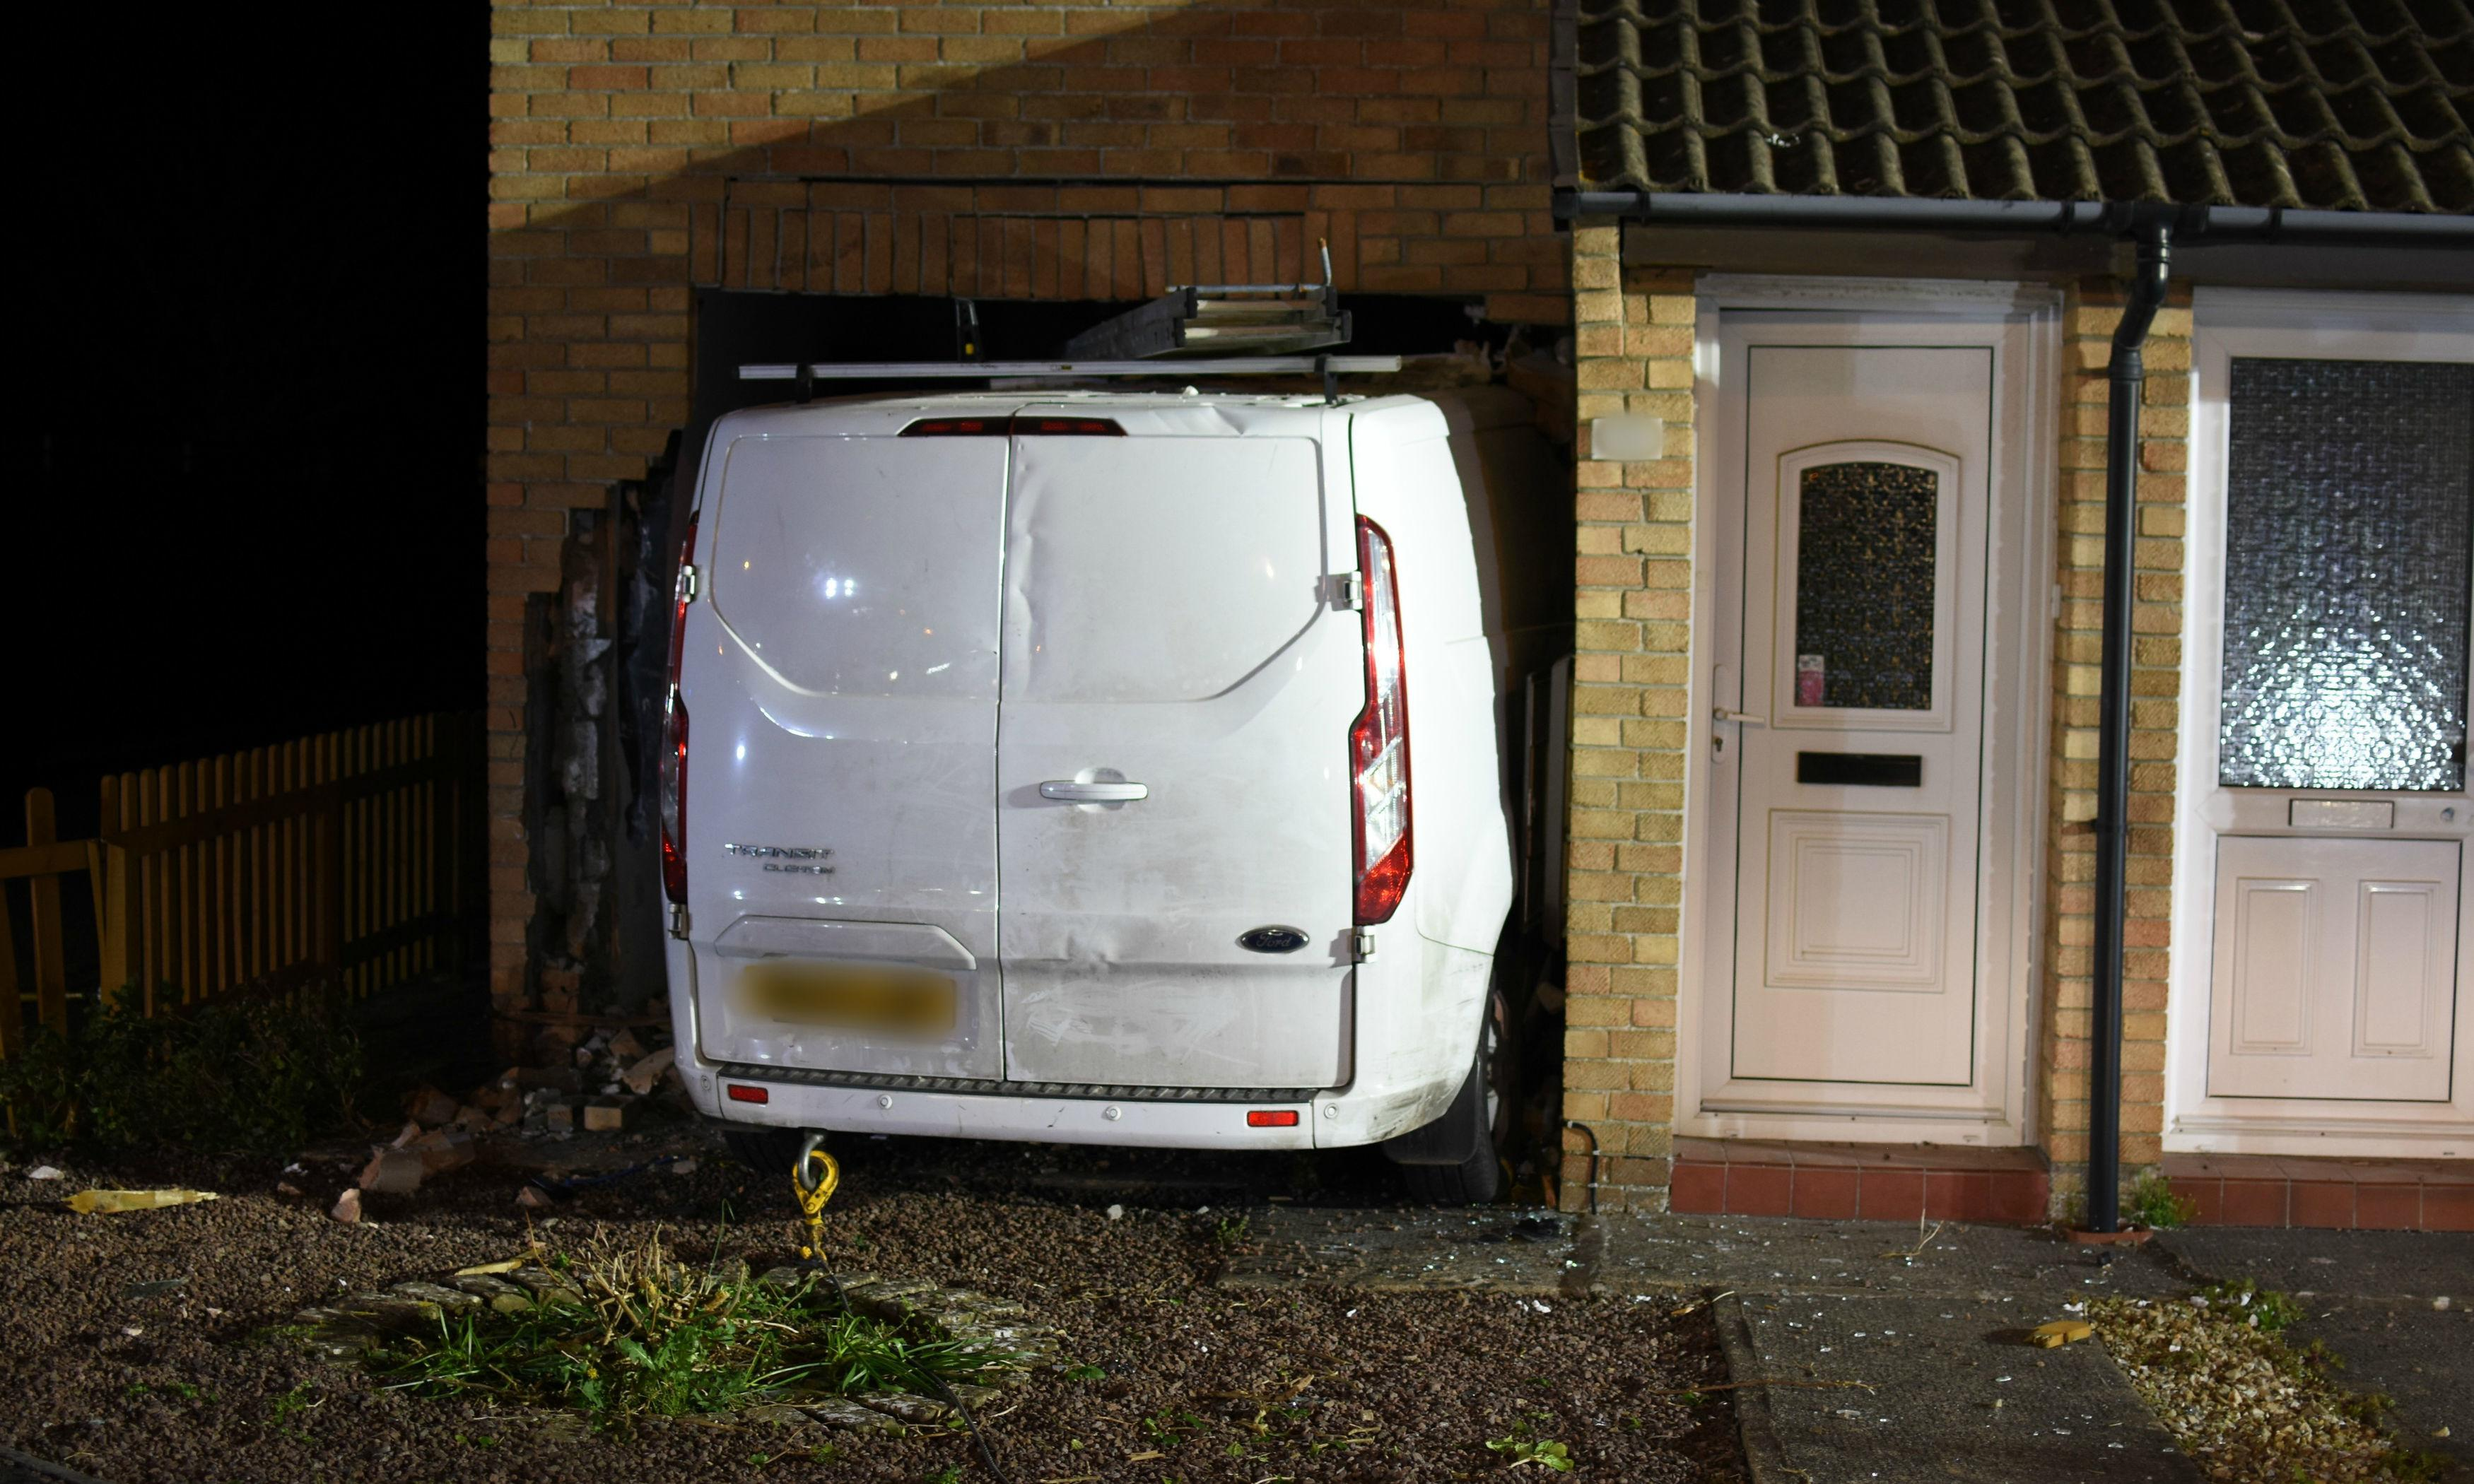 Woman who drove van into house convicted over pensioner's death